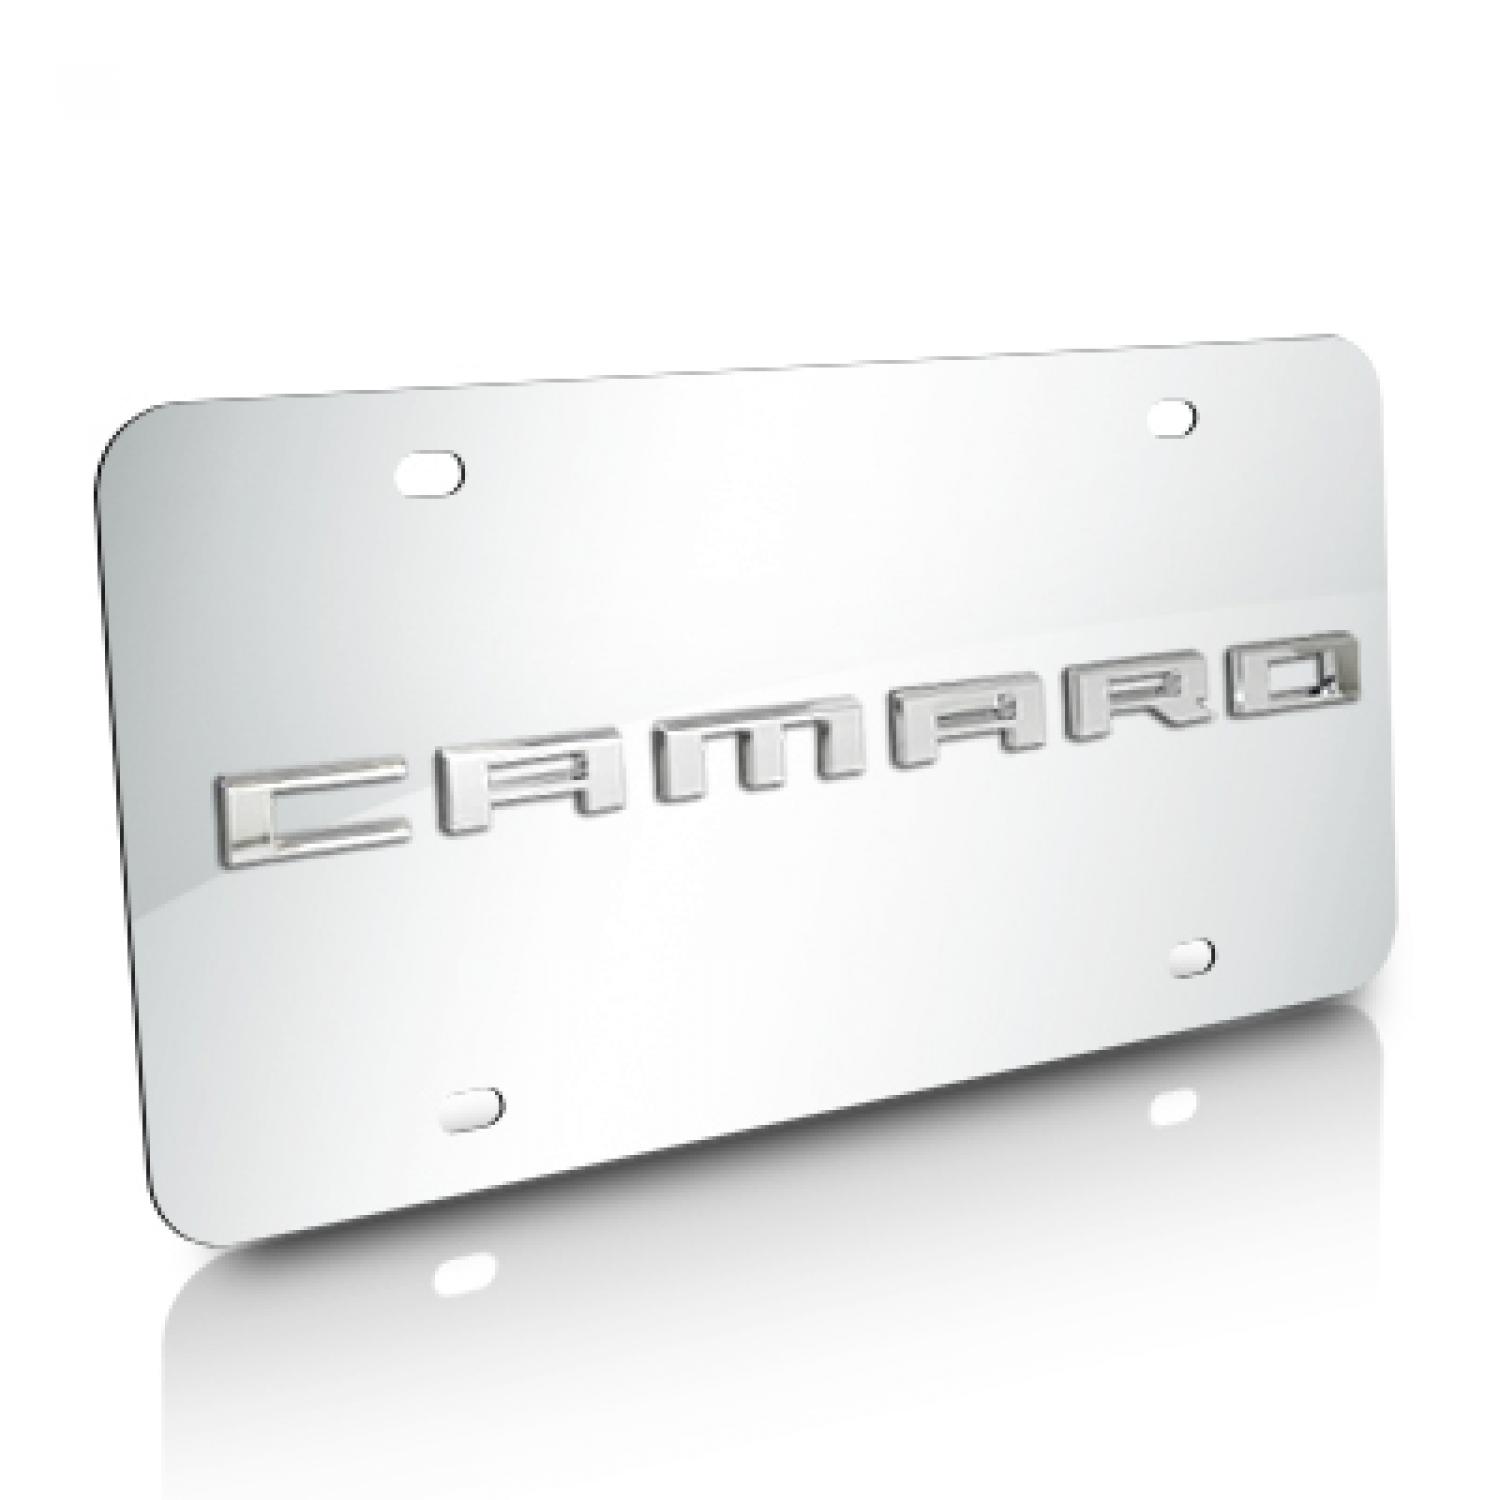 Chevrolet Camaro Nameplate 3D Logo Chrome Stainless Steel License Plate